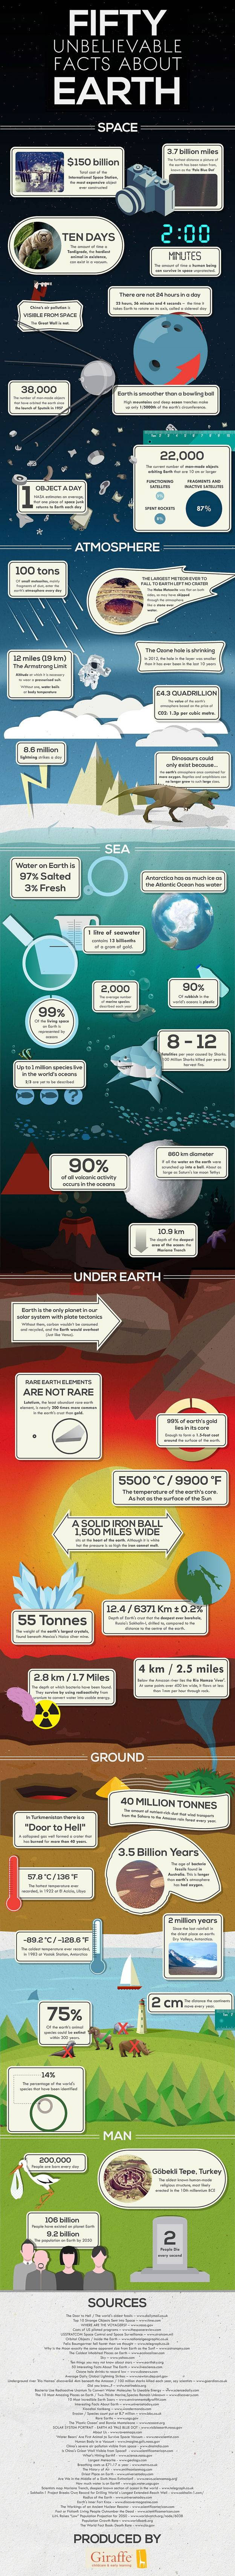 50-earth-facts